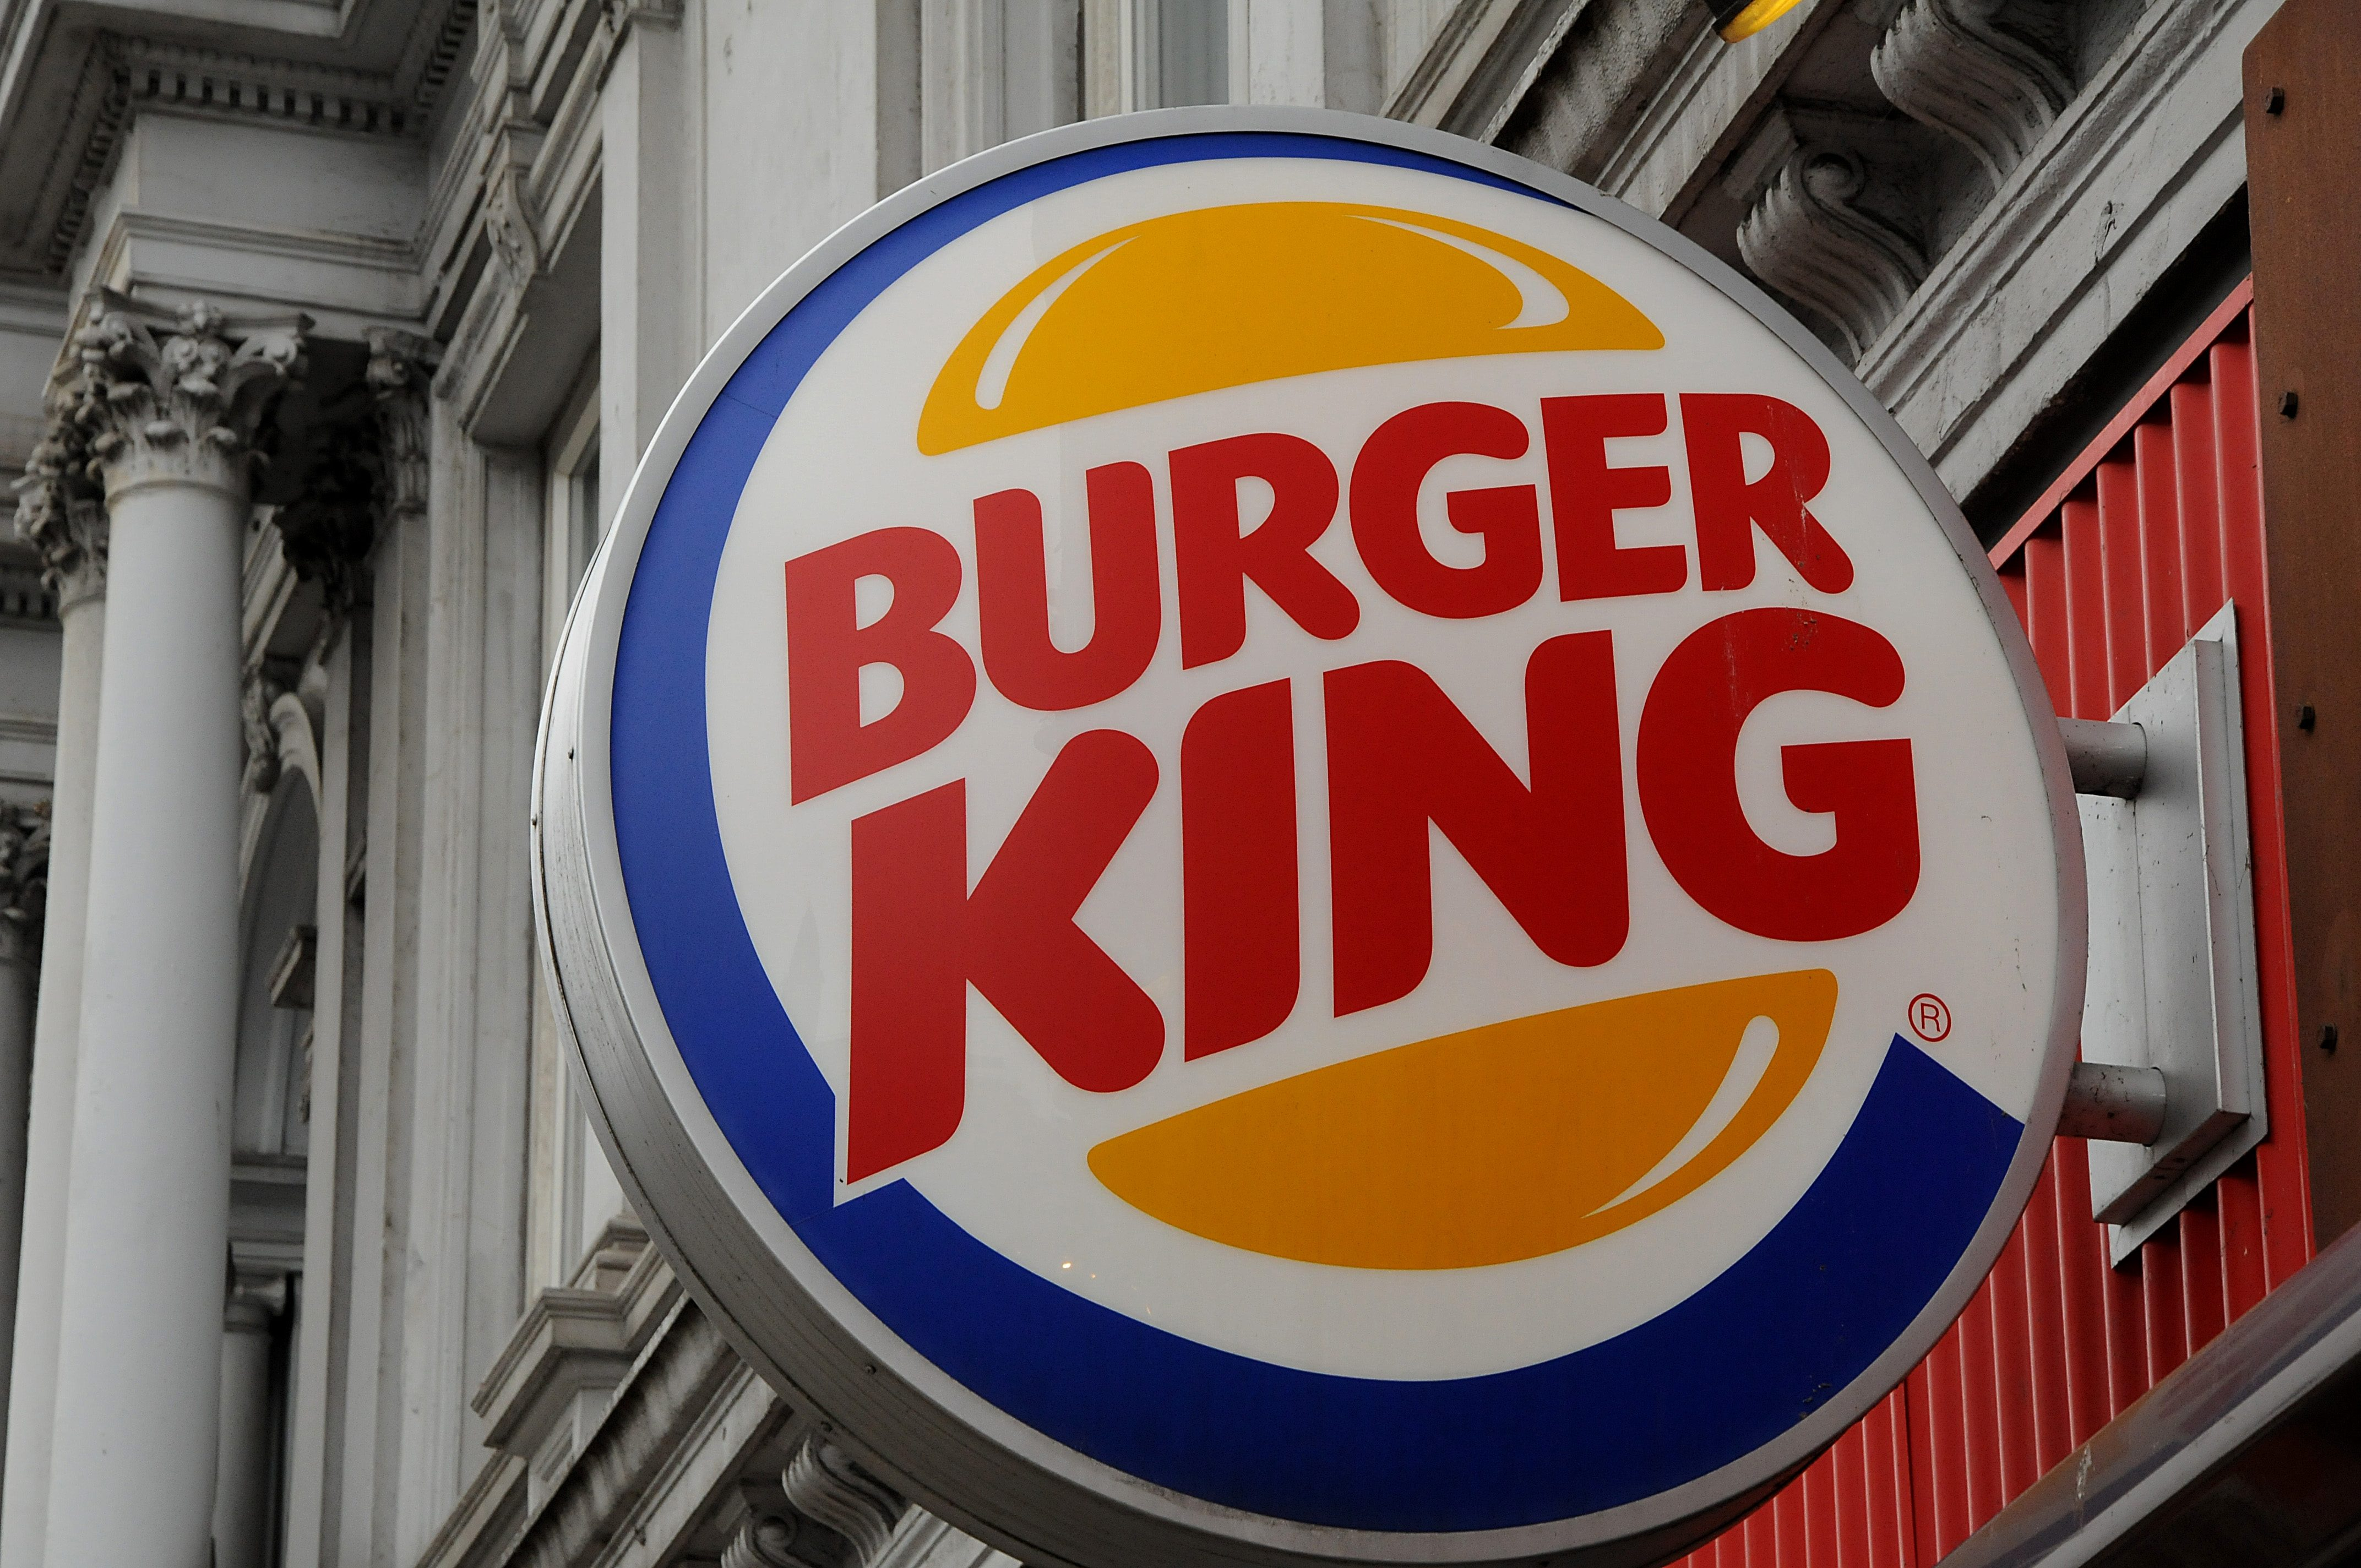 The Mysterious Burger King Crown Card